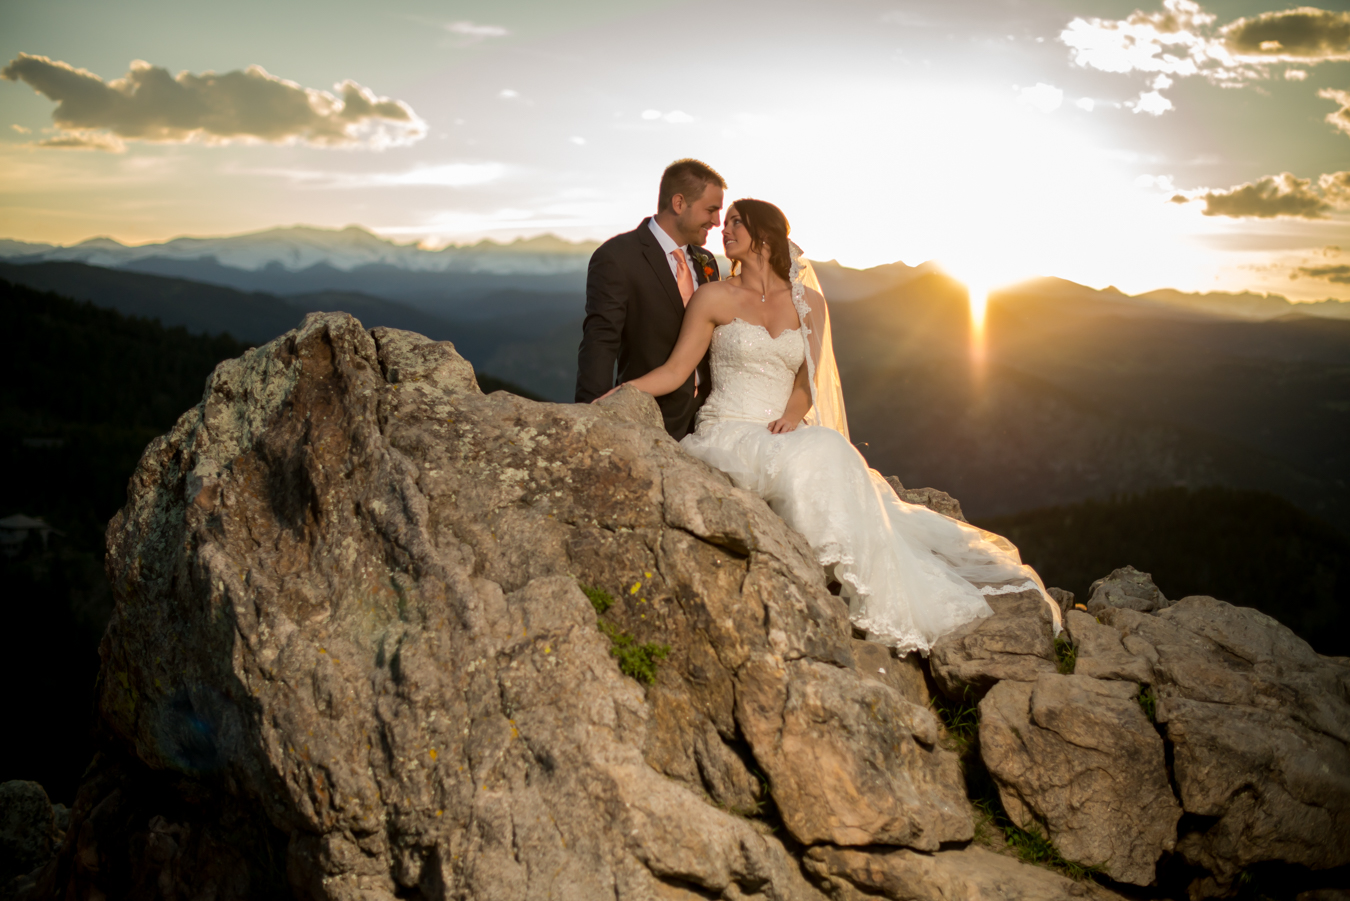 Romantic wedding in the mountains, sunset | Leonardo Bansko